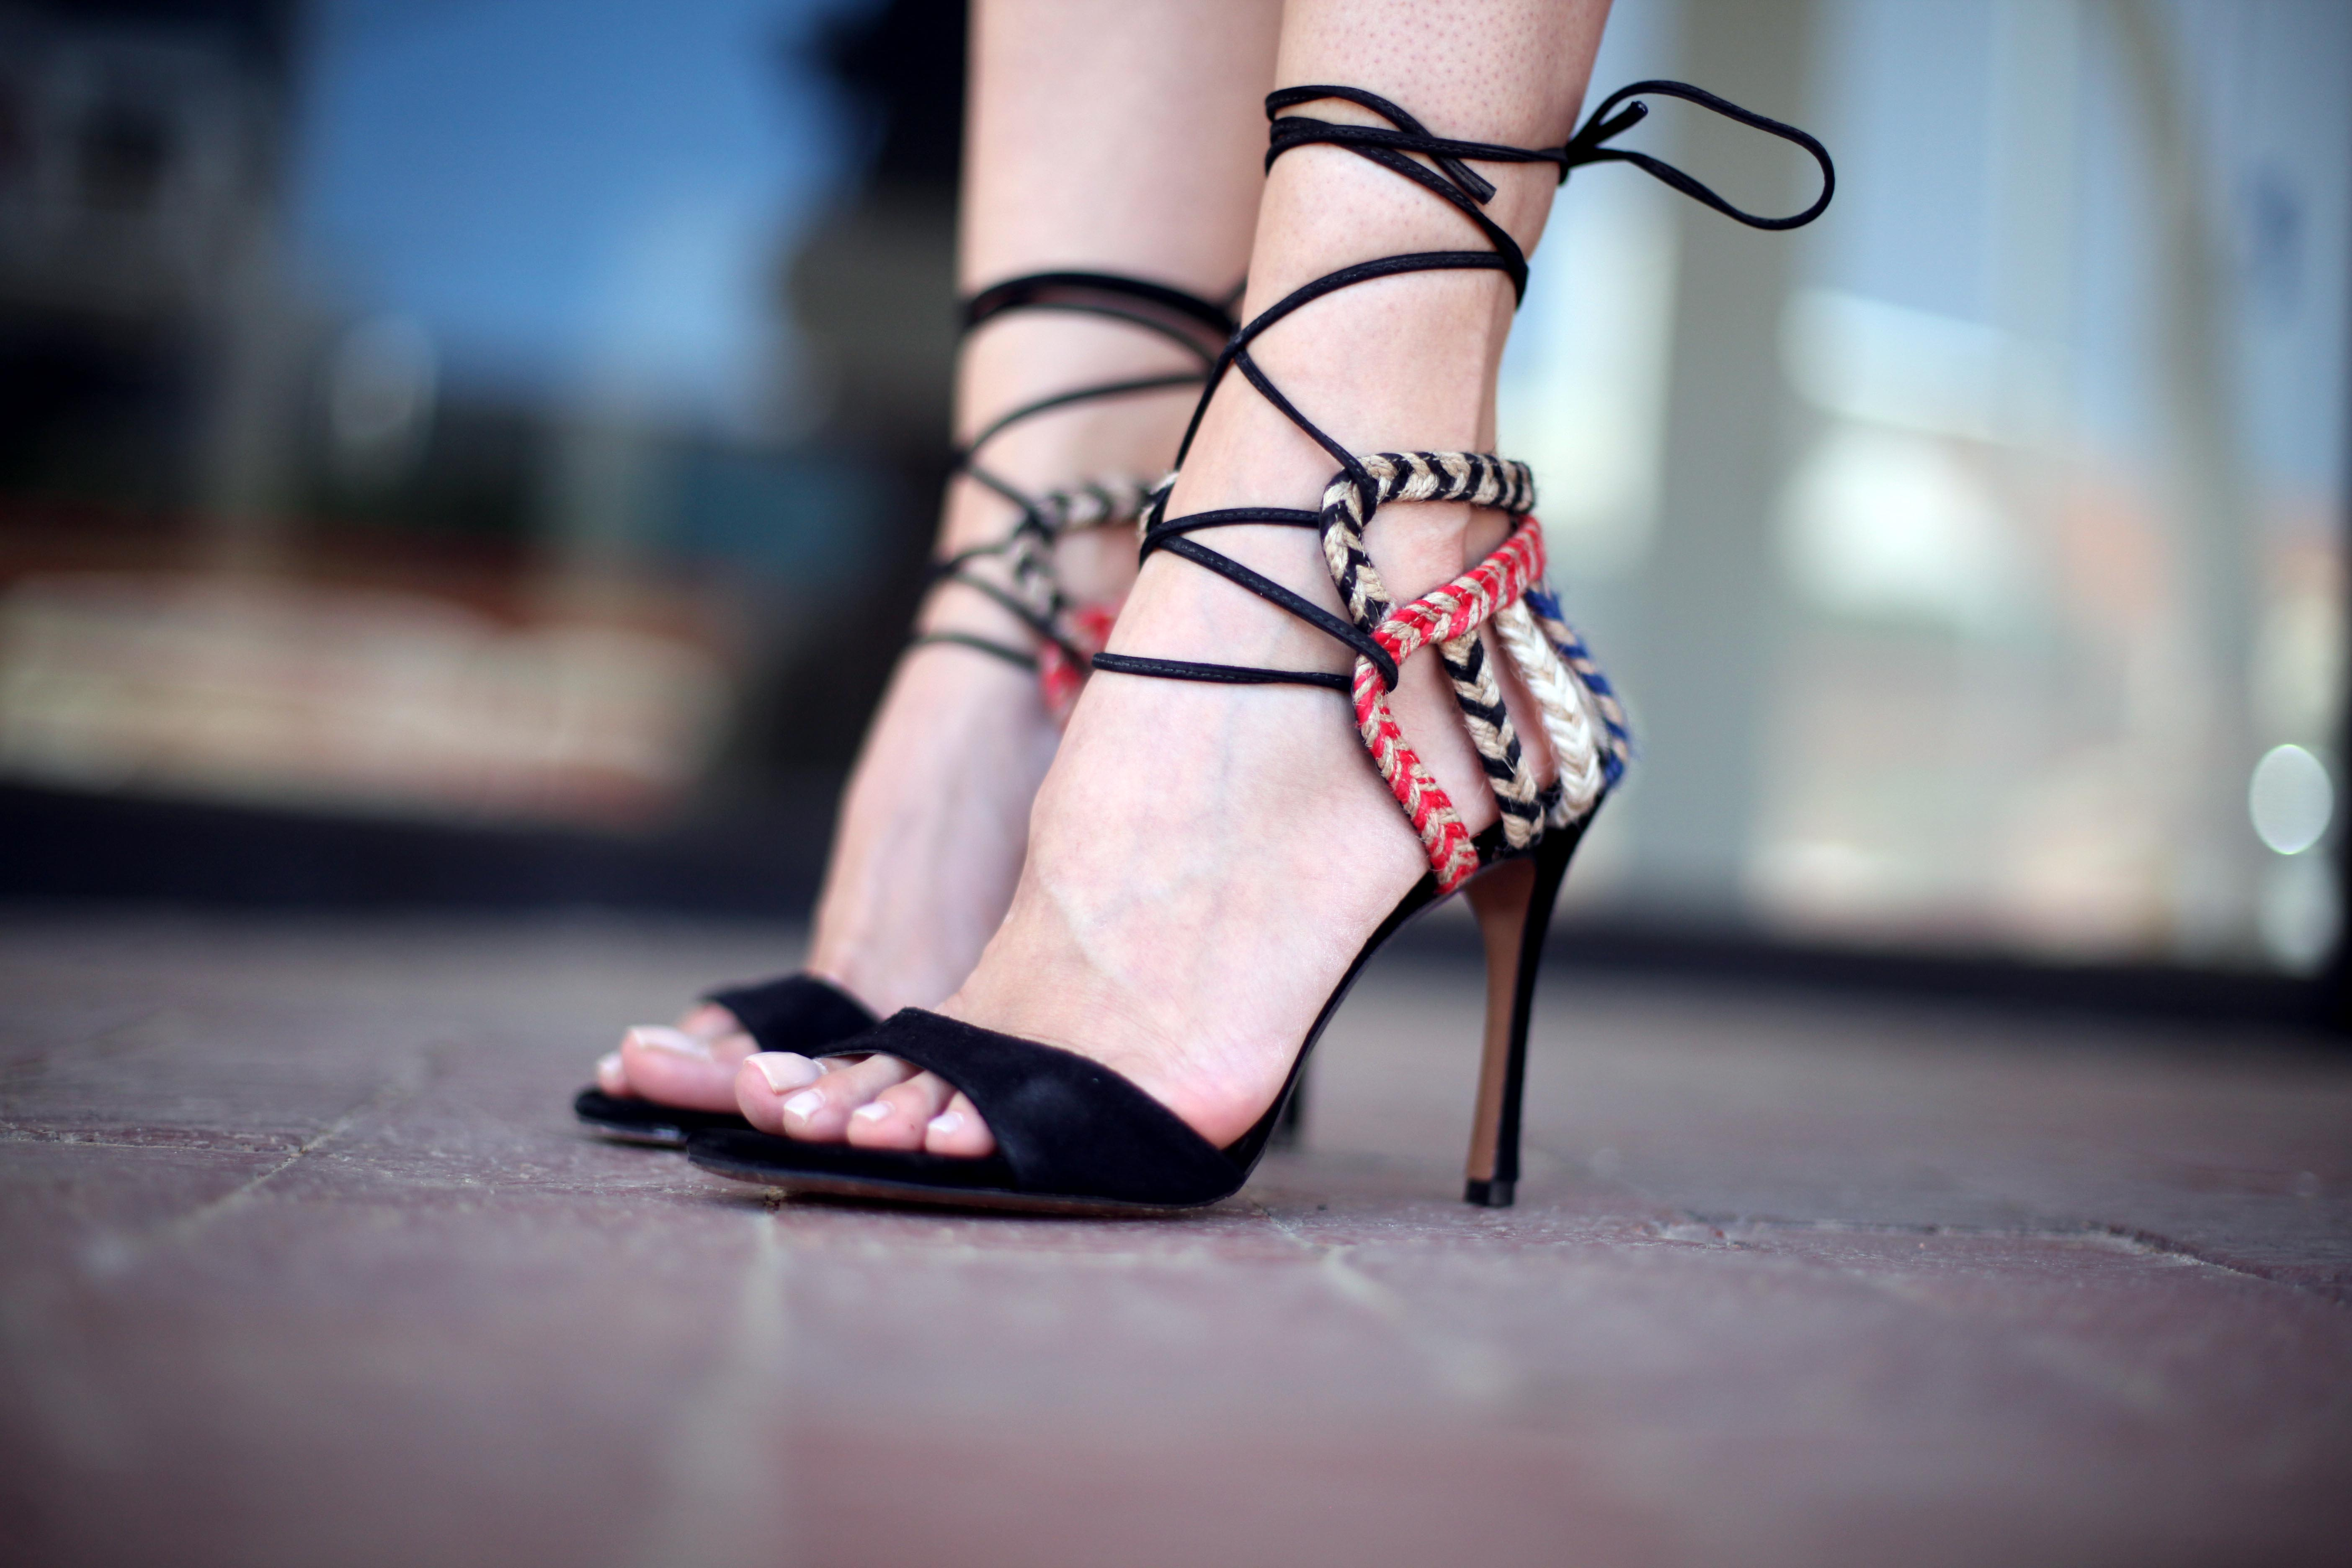 bailey-schneider-bohemian-style-and-lilikoi-heels-2